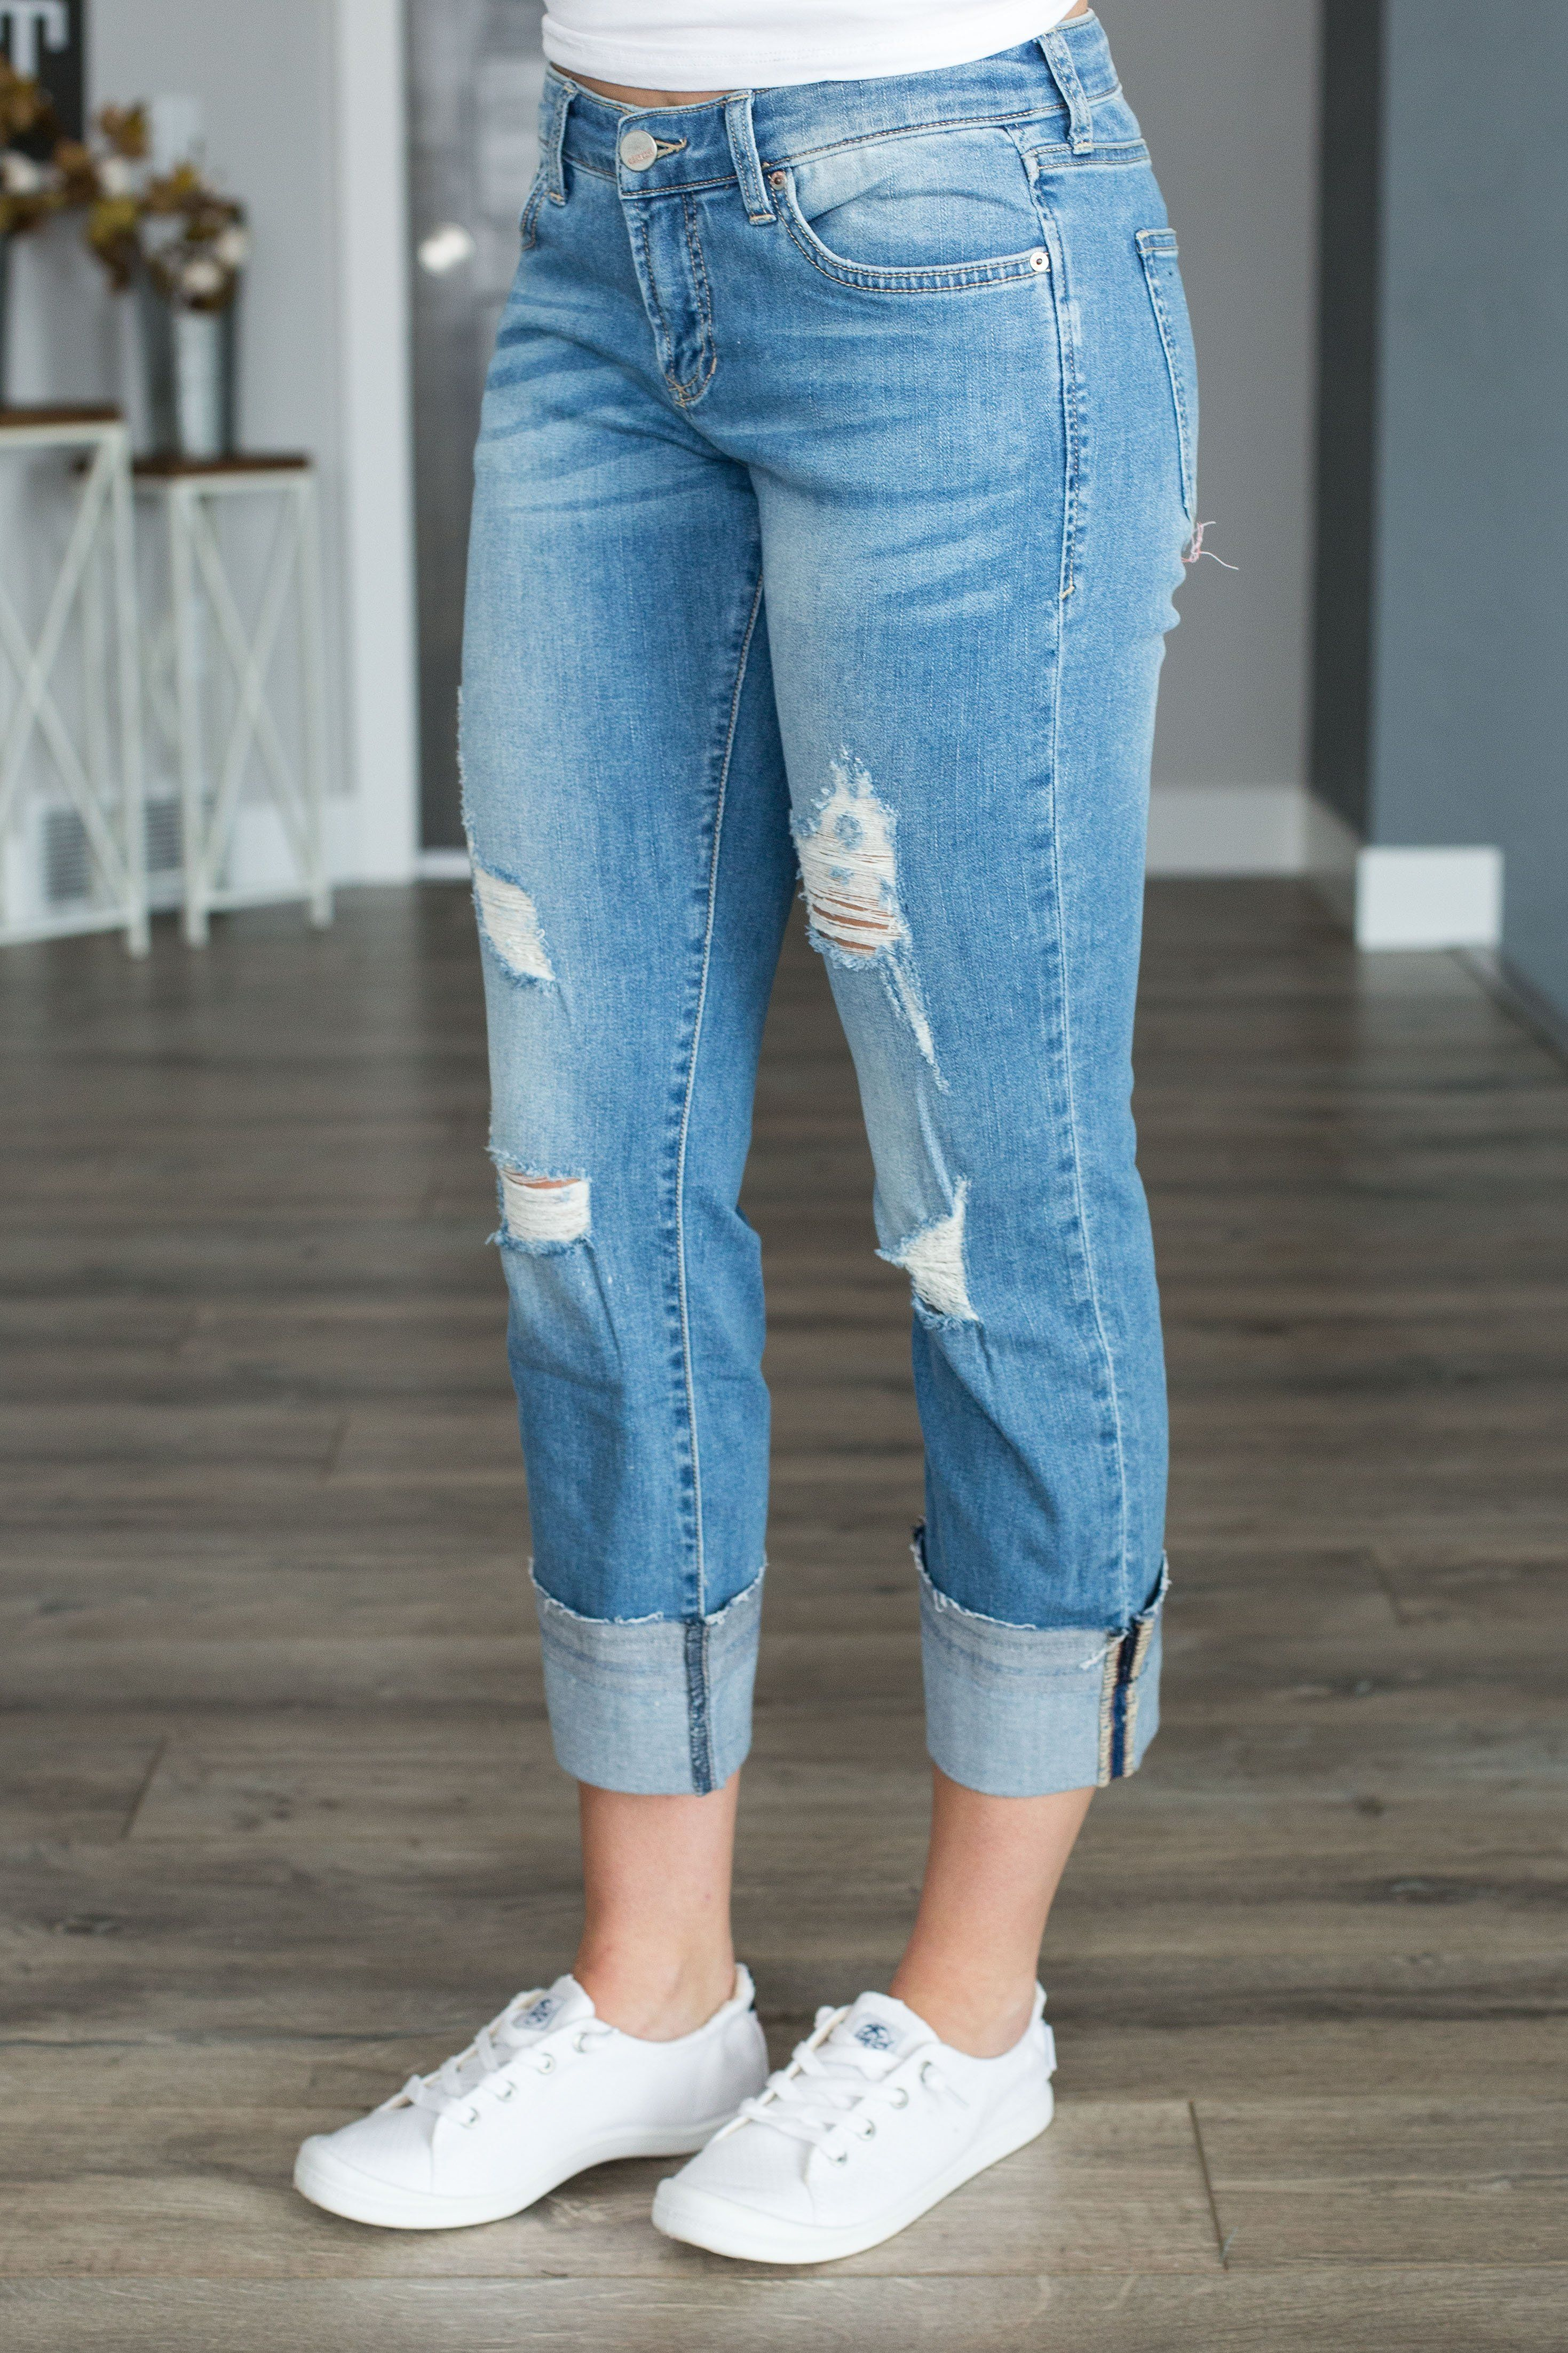 647db1d5fbb286 Light wash boyfriend jean with a relaxed fit, exaggerated cuff and light  distressing. Runs